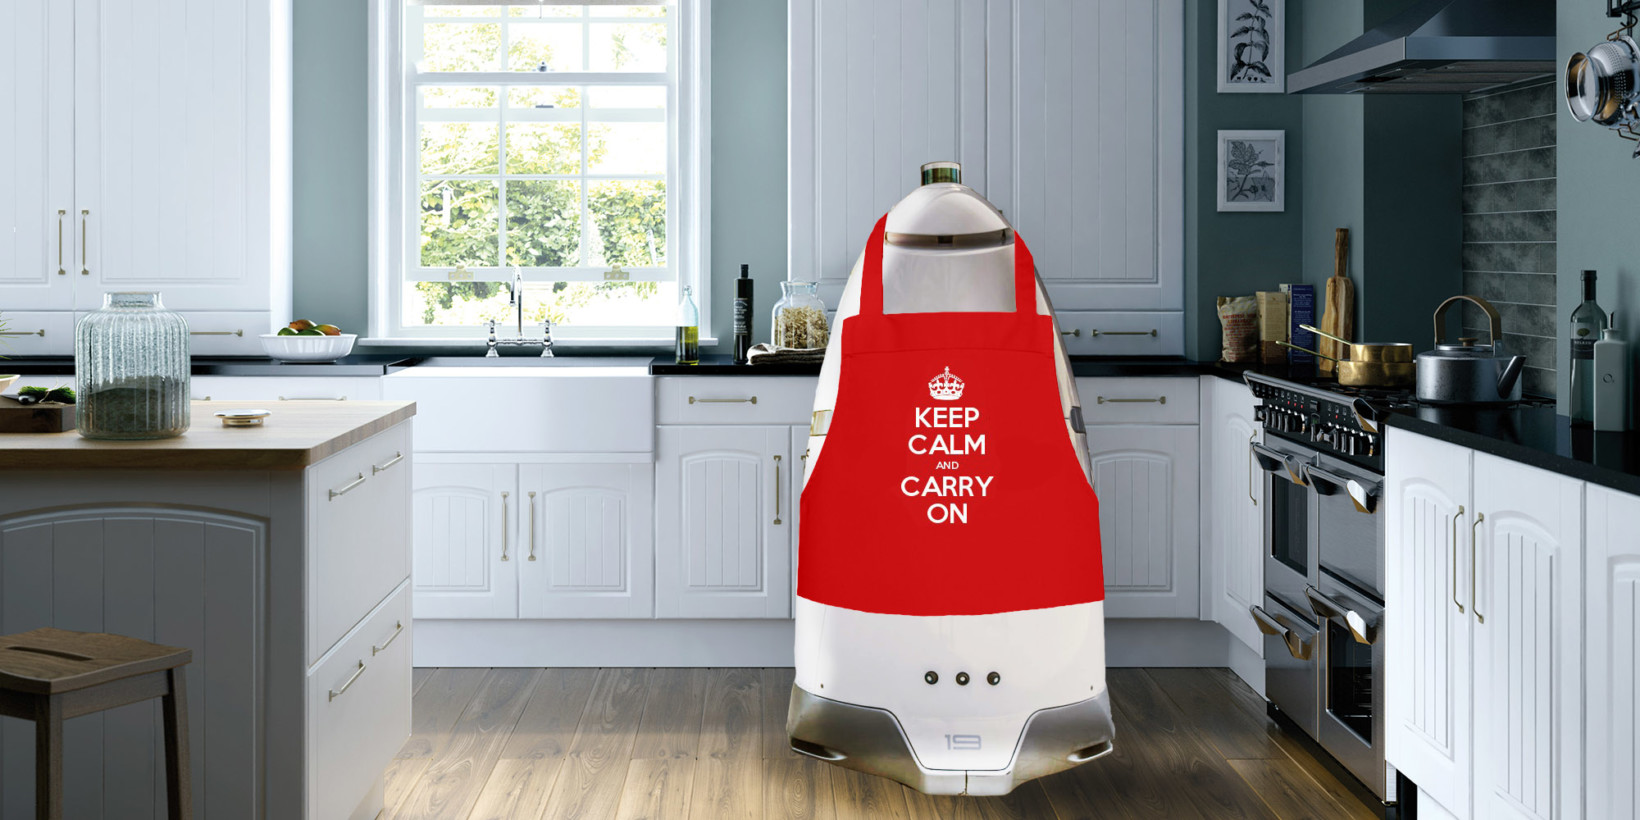 Machine learning has entered the kitchen, and I for one welcome our ...